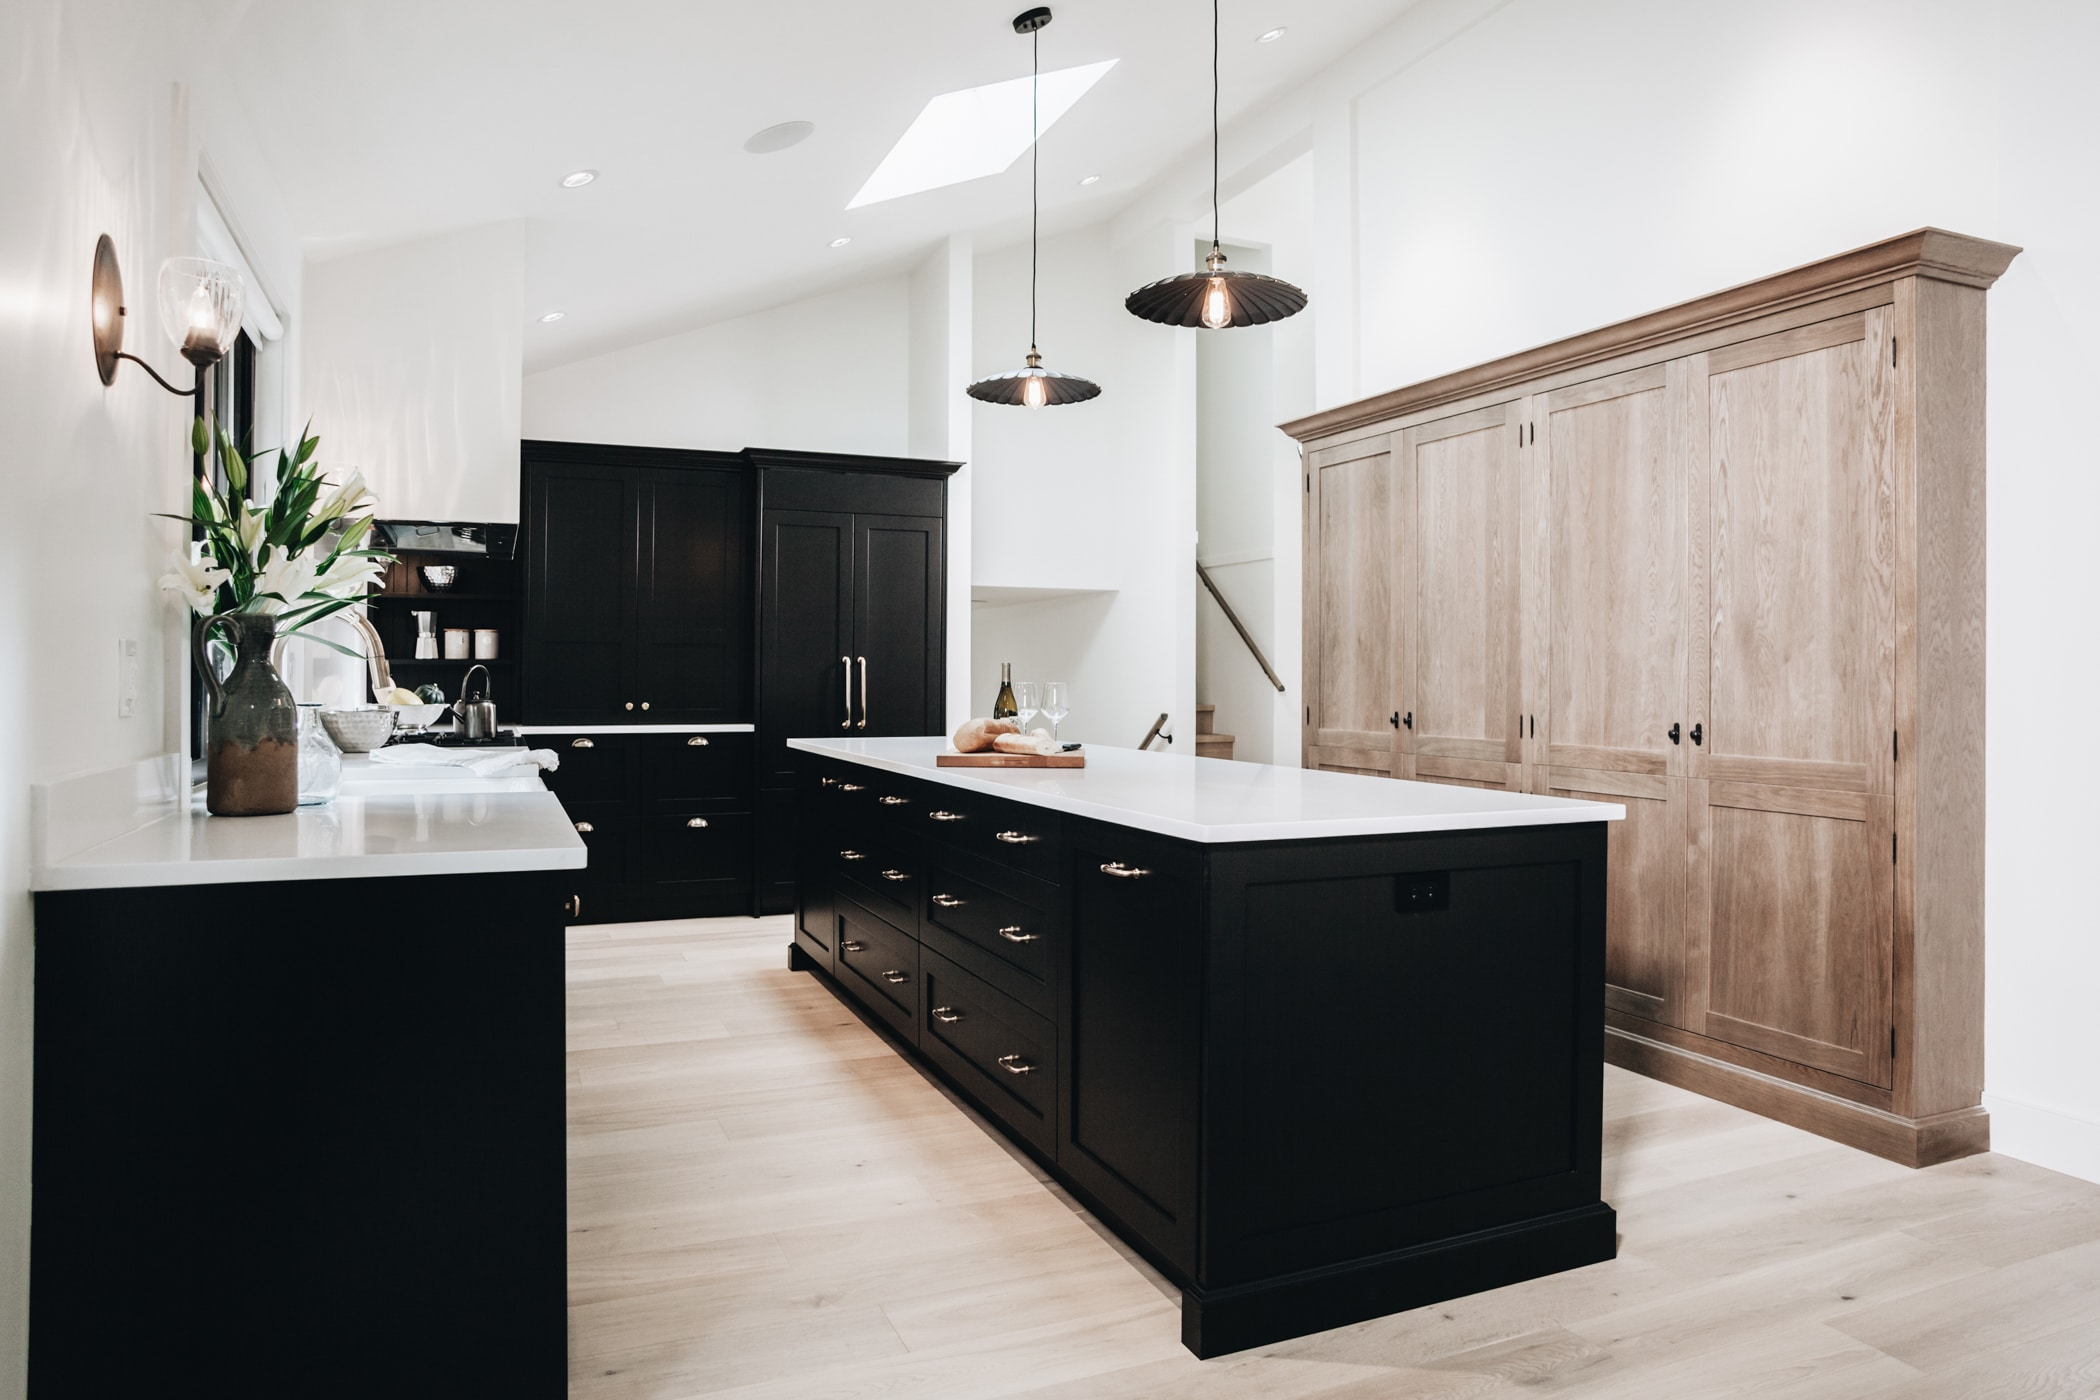 How to Ensure Your Kitchen Remodel Stays On Budget | Kitchen Art Design